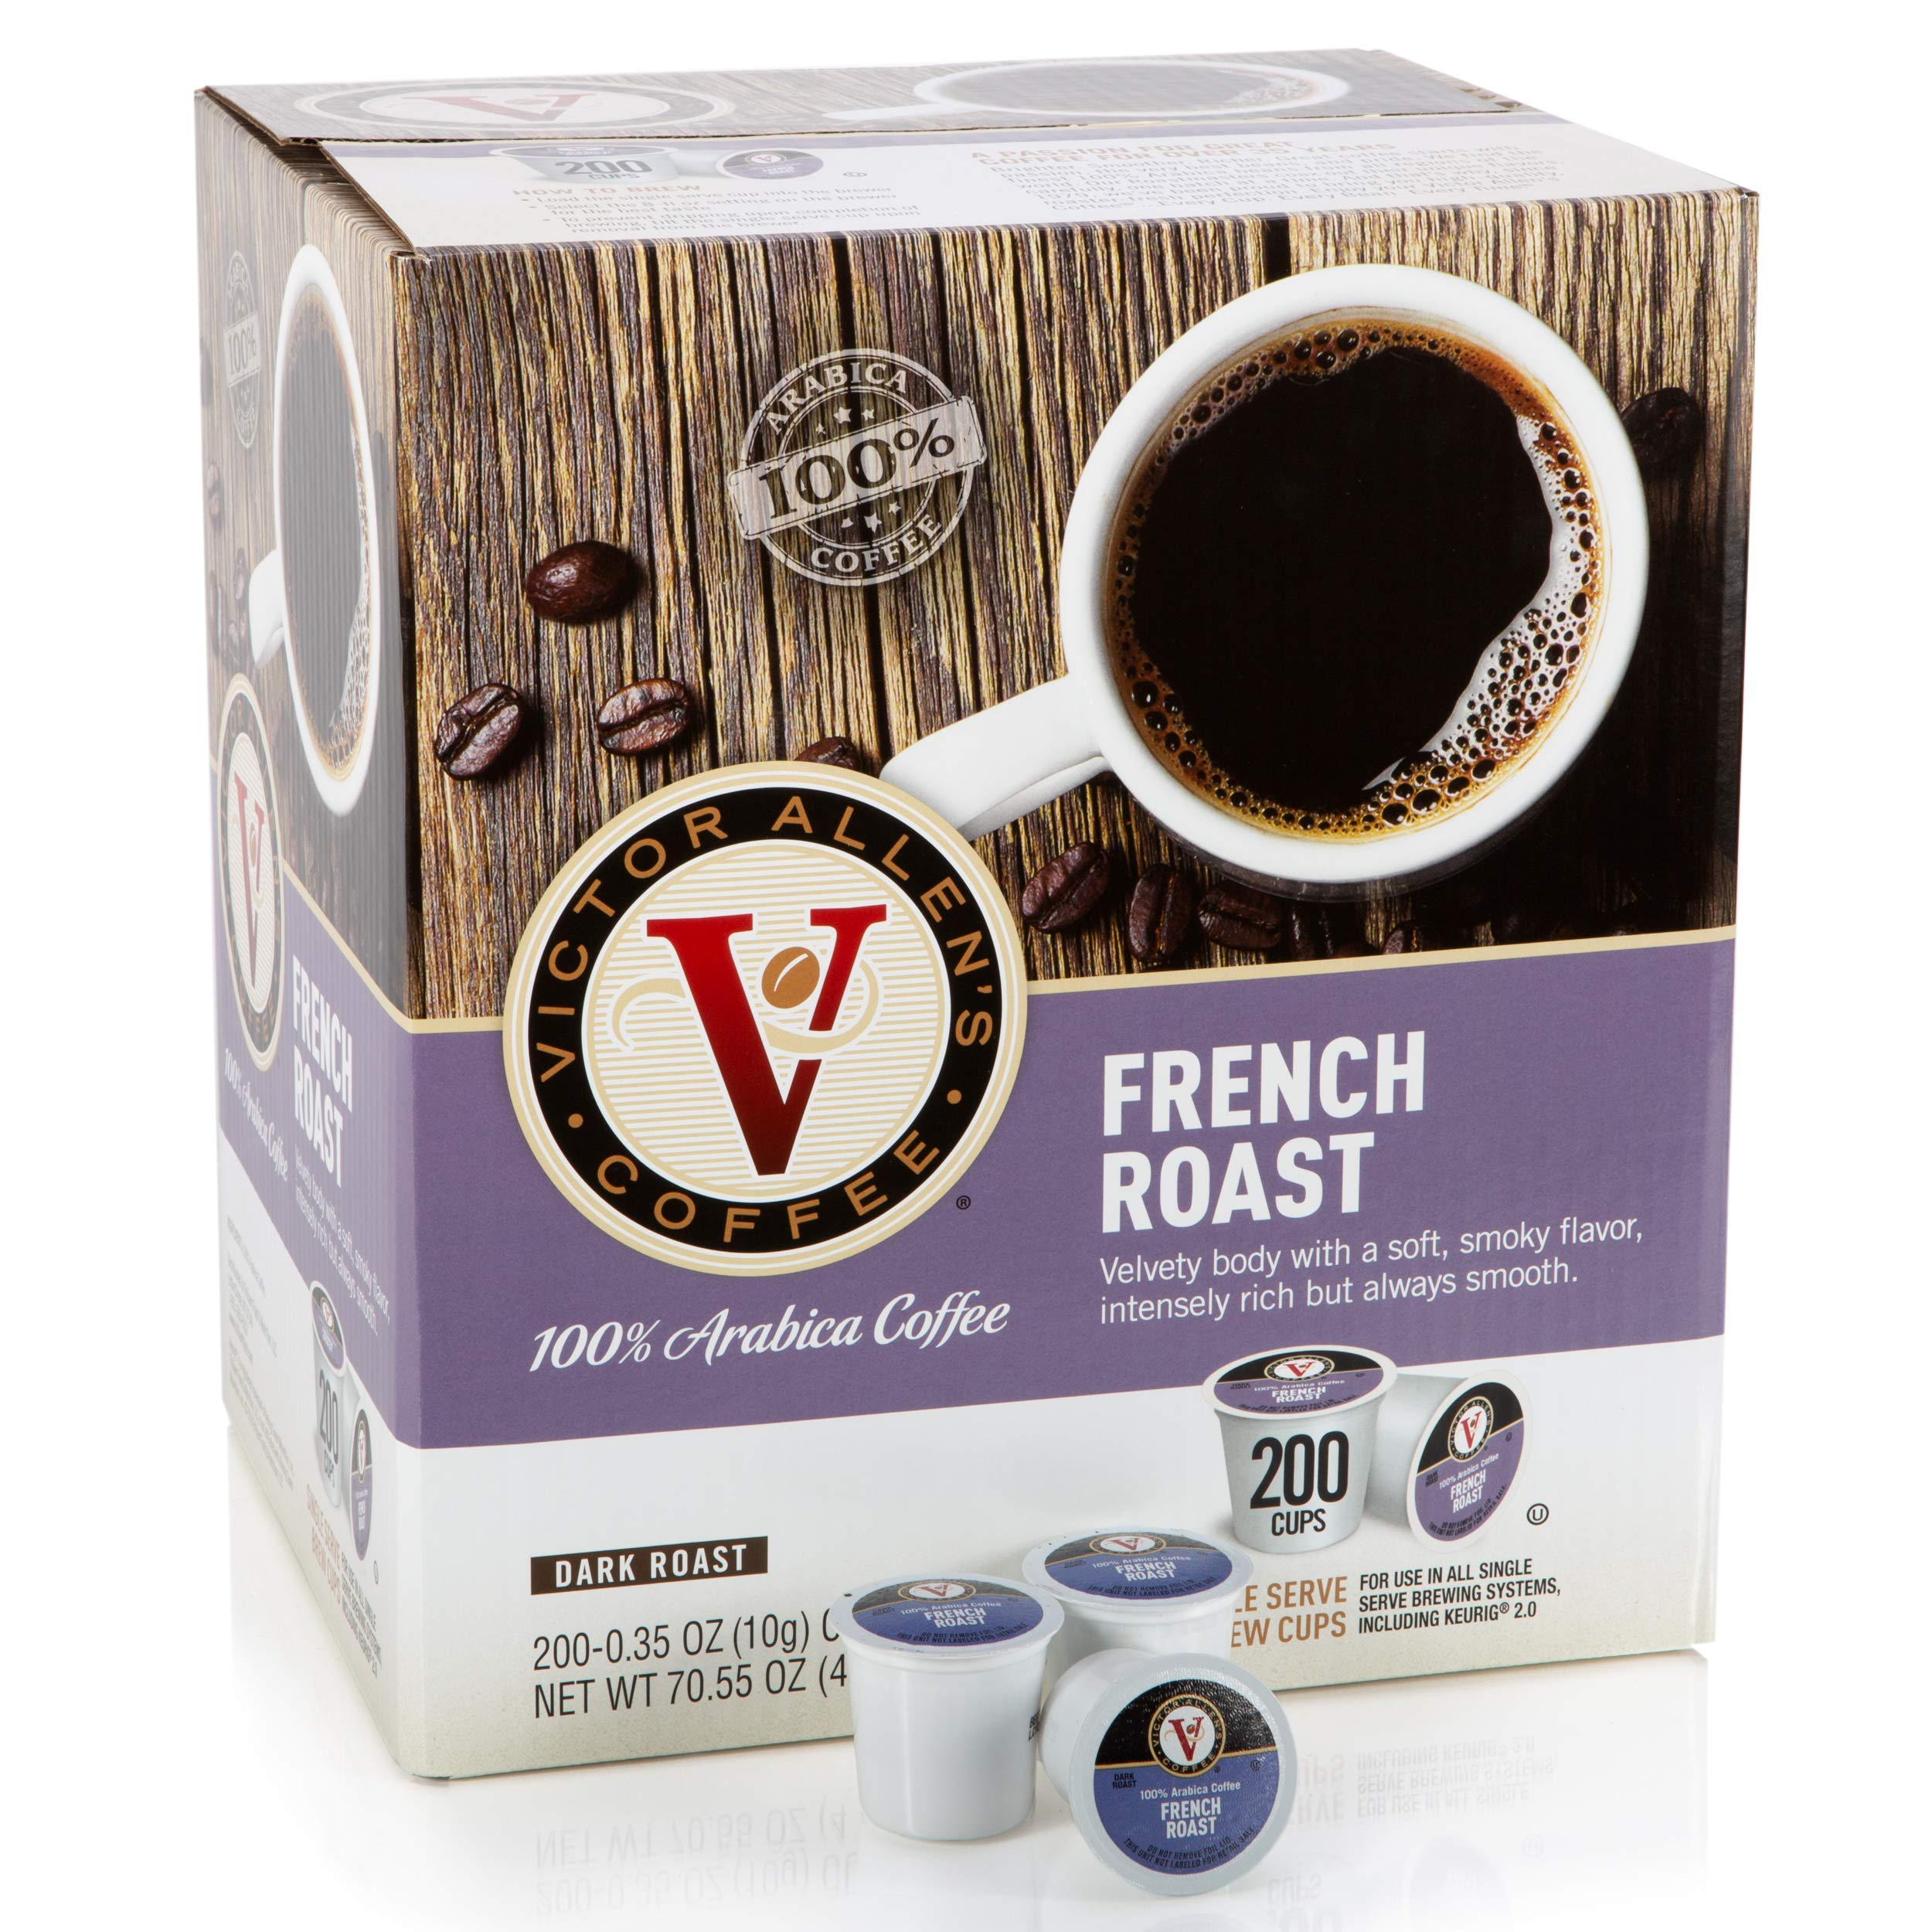 Victor Allen Coffee, French Roast Single Serve K-cup, 200 Count (Compatible with 2.0 Keurig Brewers) by Victor Allen (Image #1)